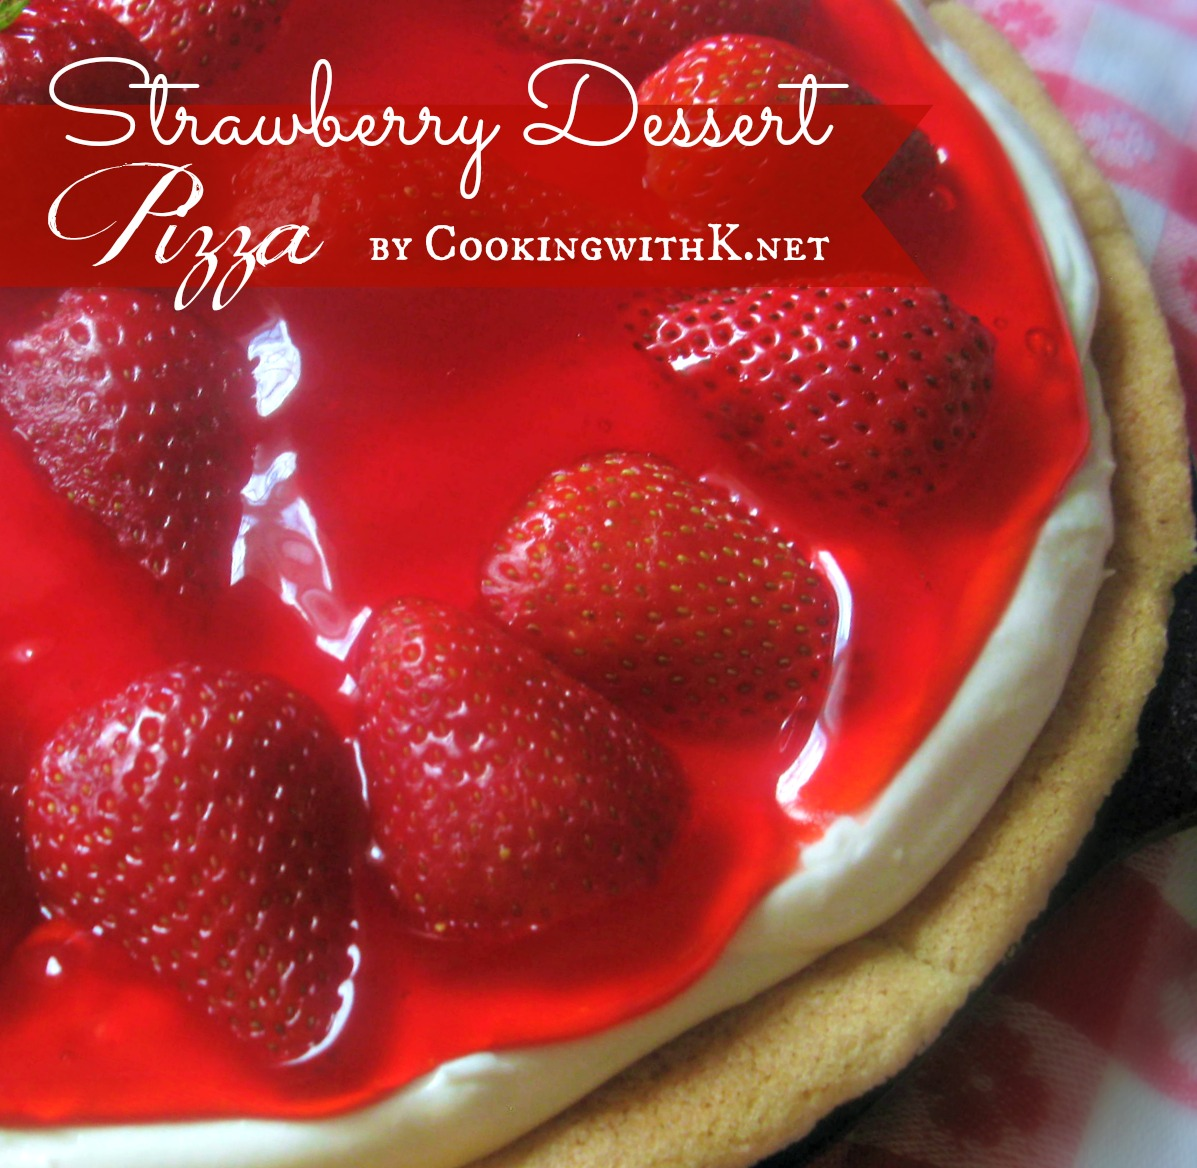 ... Delicious Dessert for July 4th! Easy Strawberry Dessert Pizza